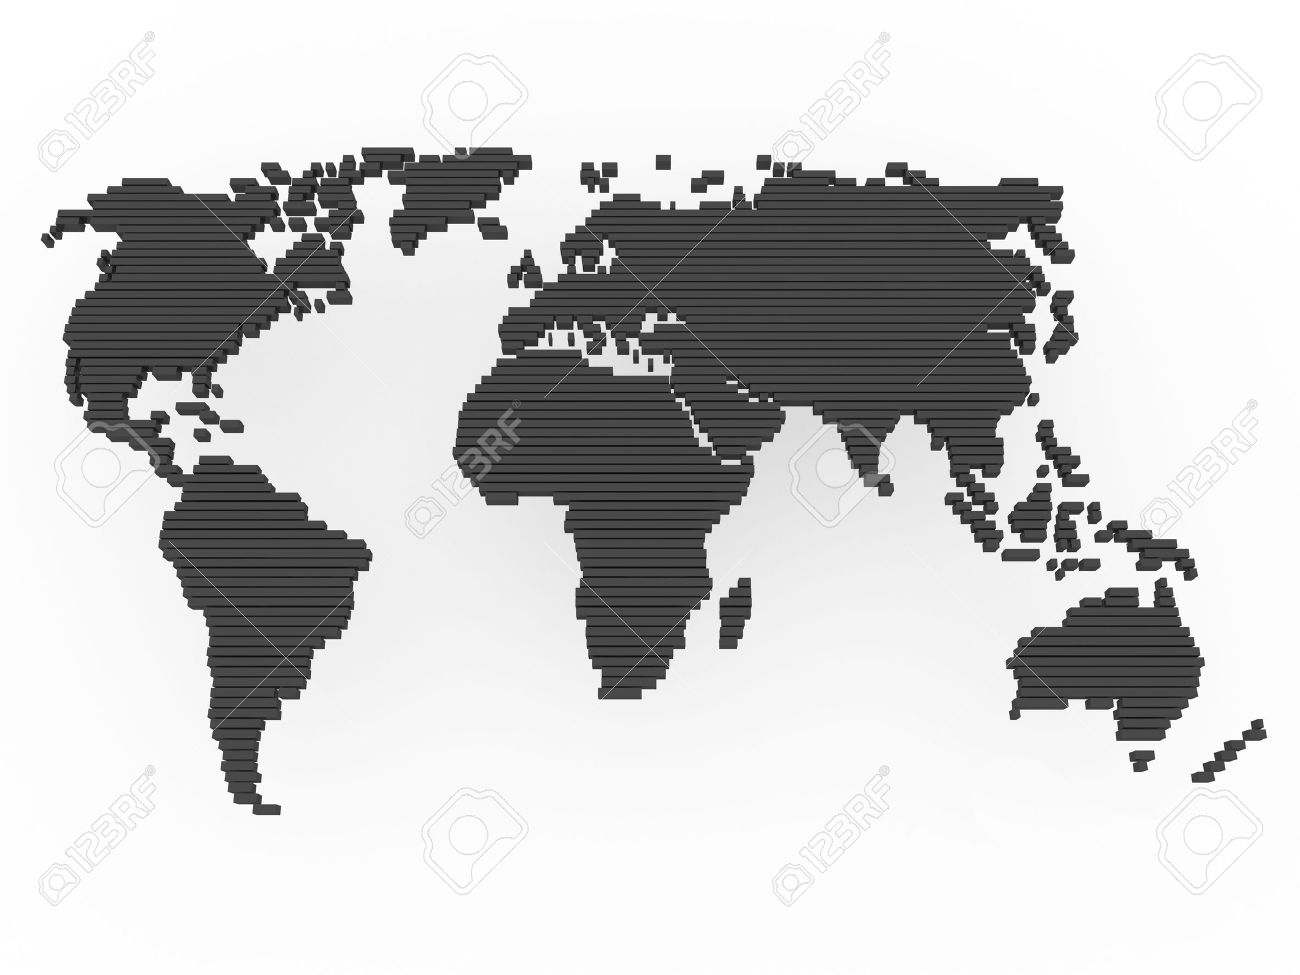 Map of asia europe america map of north america america map of world map earth europe america africa asia stock photo gumiabroncs Images